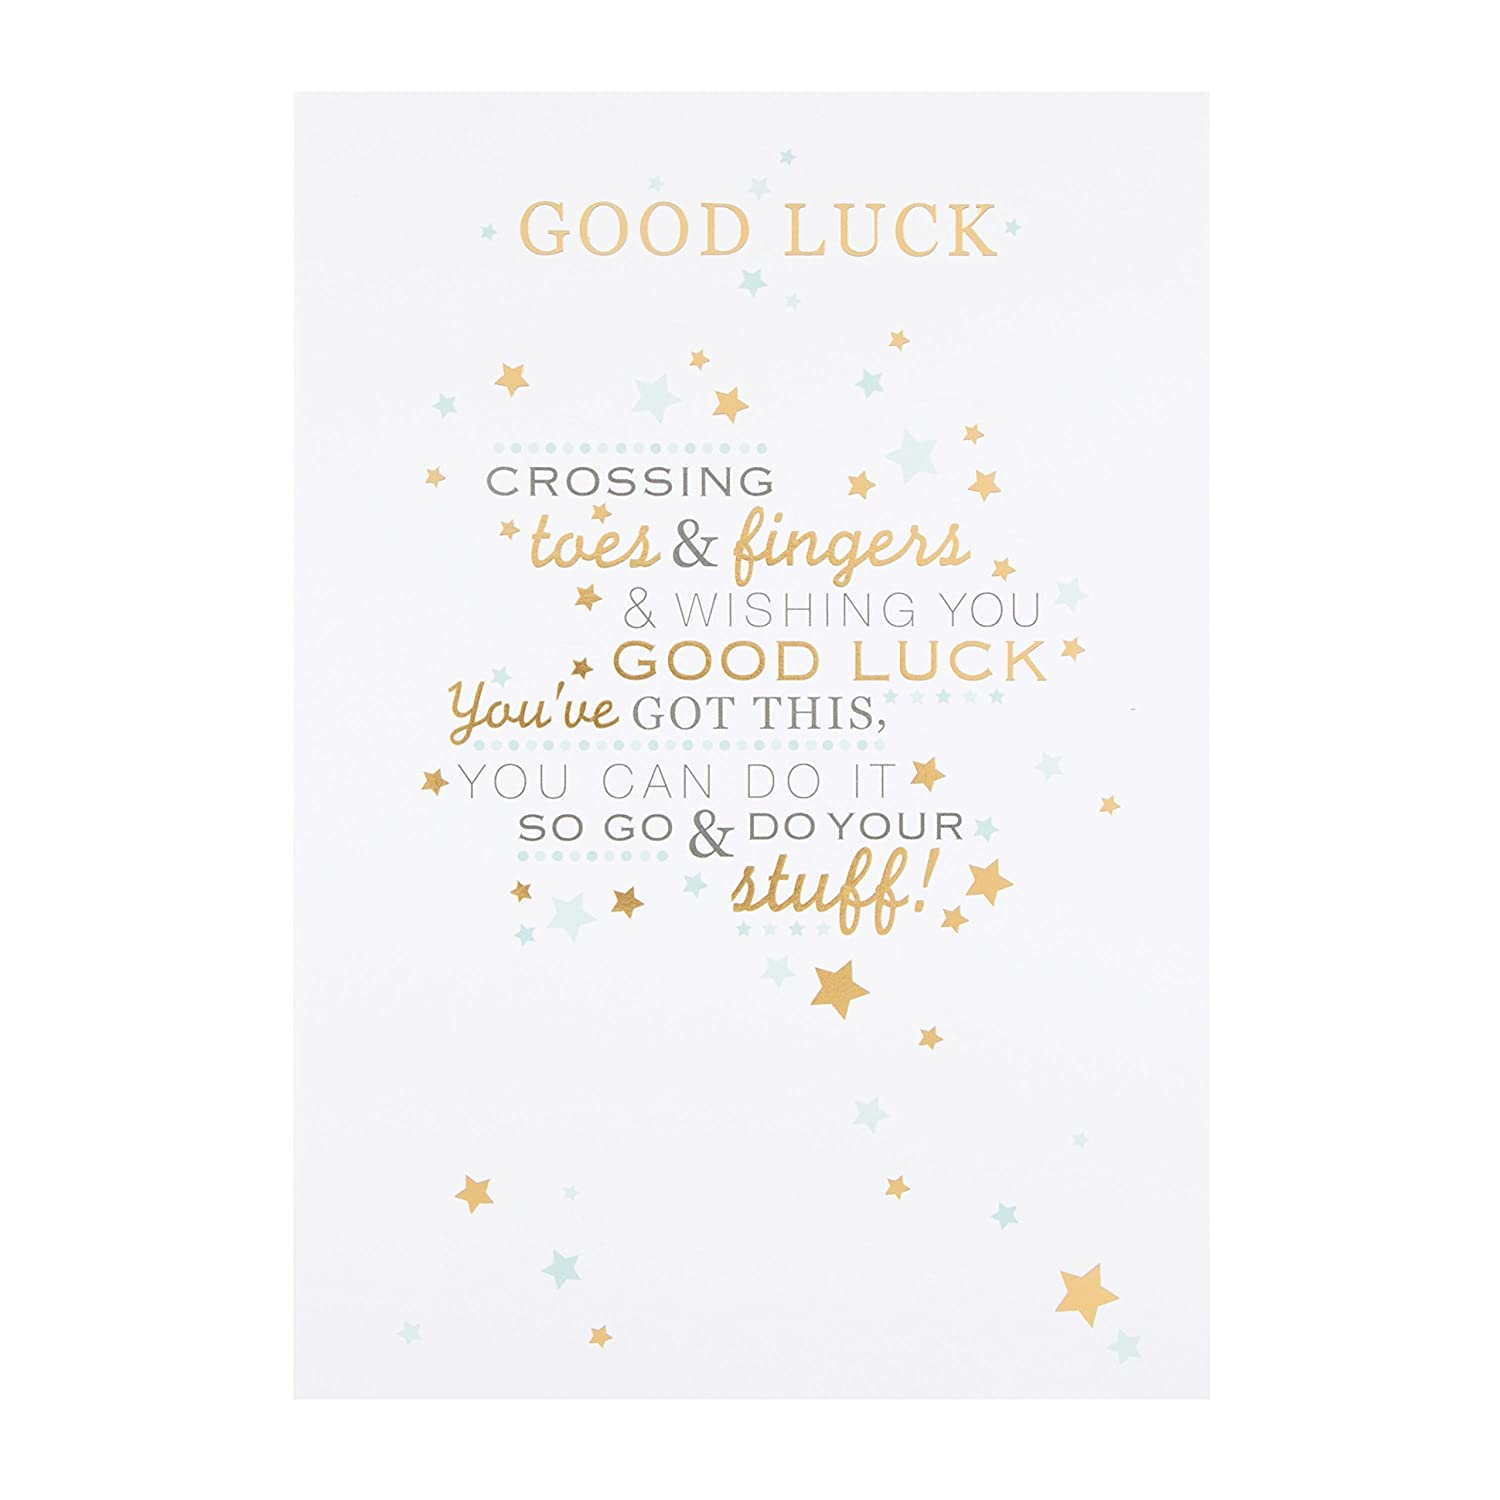 Medium Hallmark 25500666 Good Luck Card Toes and Fingers Crossed Old Model